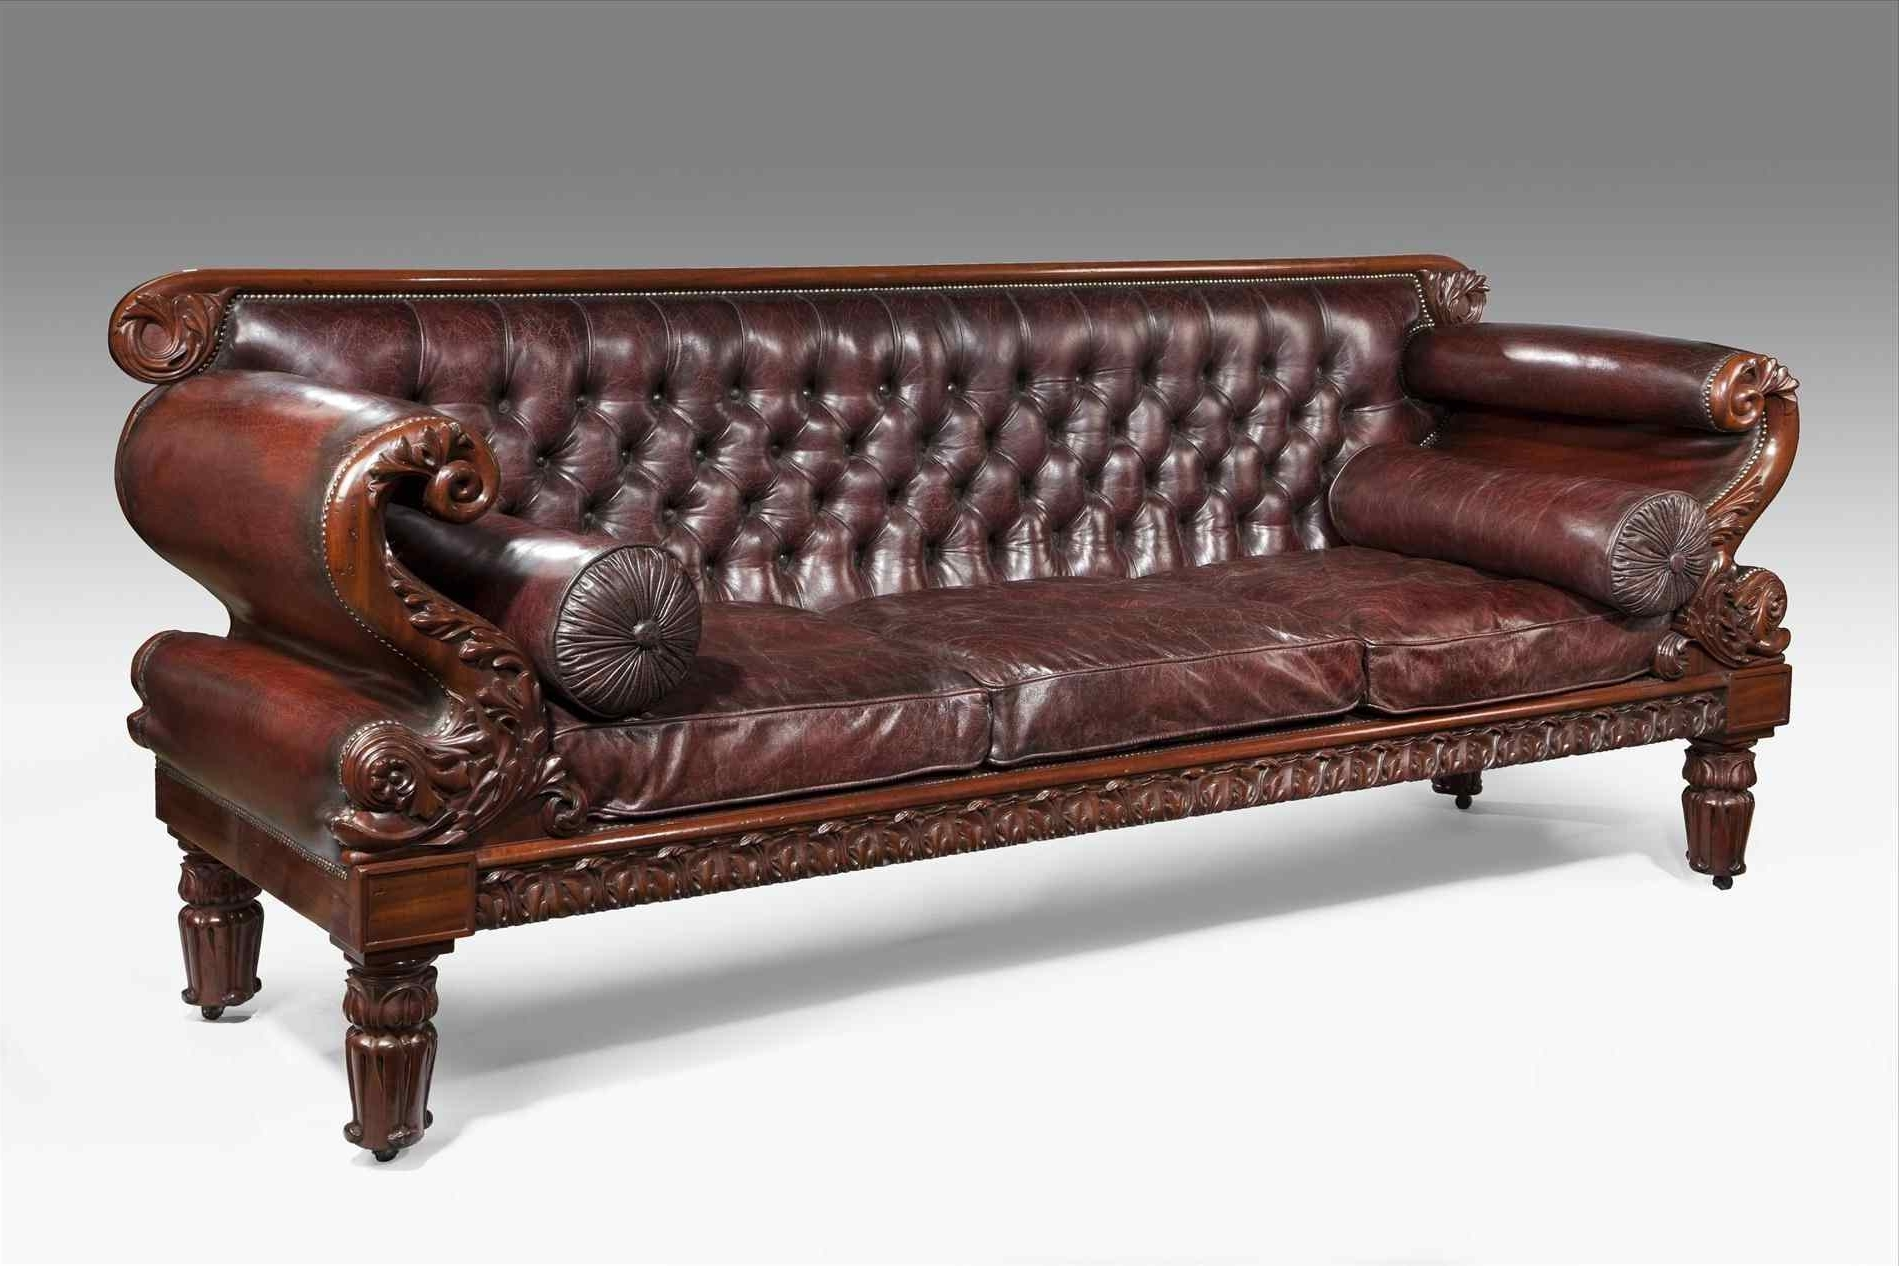 Sofa : Modern Antique Sofa Vintage High Back Armchair Chairs Ideas In Favorite Antique Sofas (View 5 of 20)